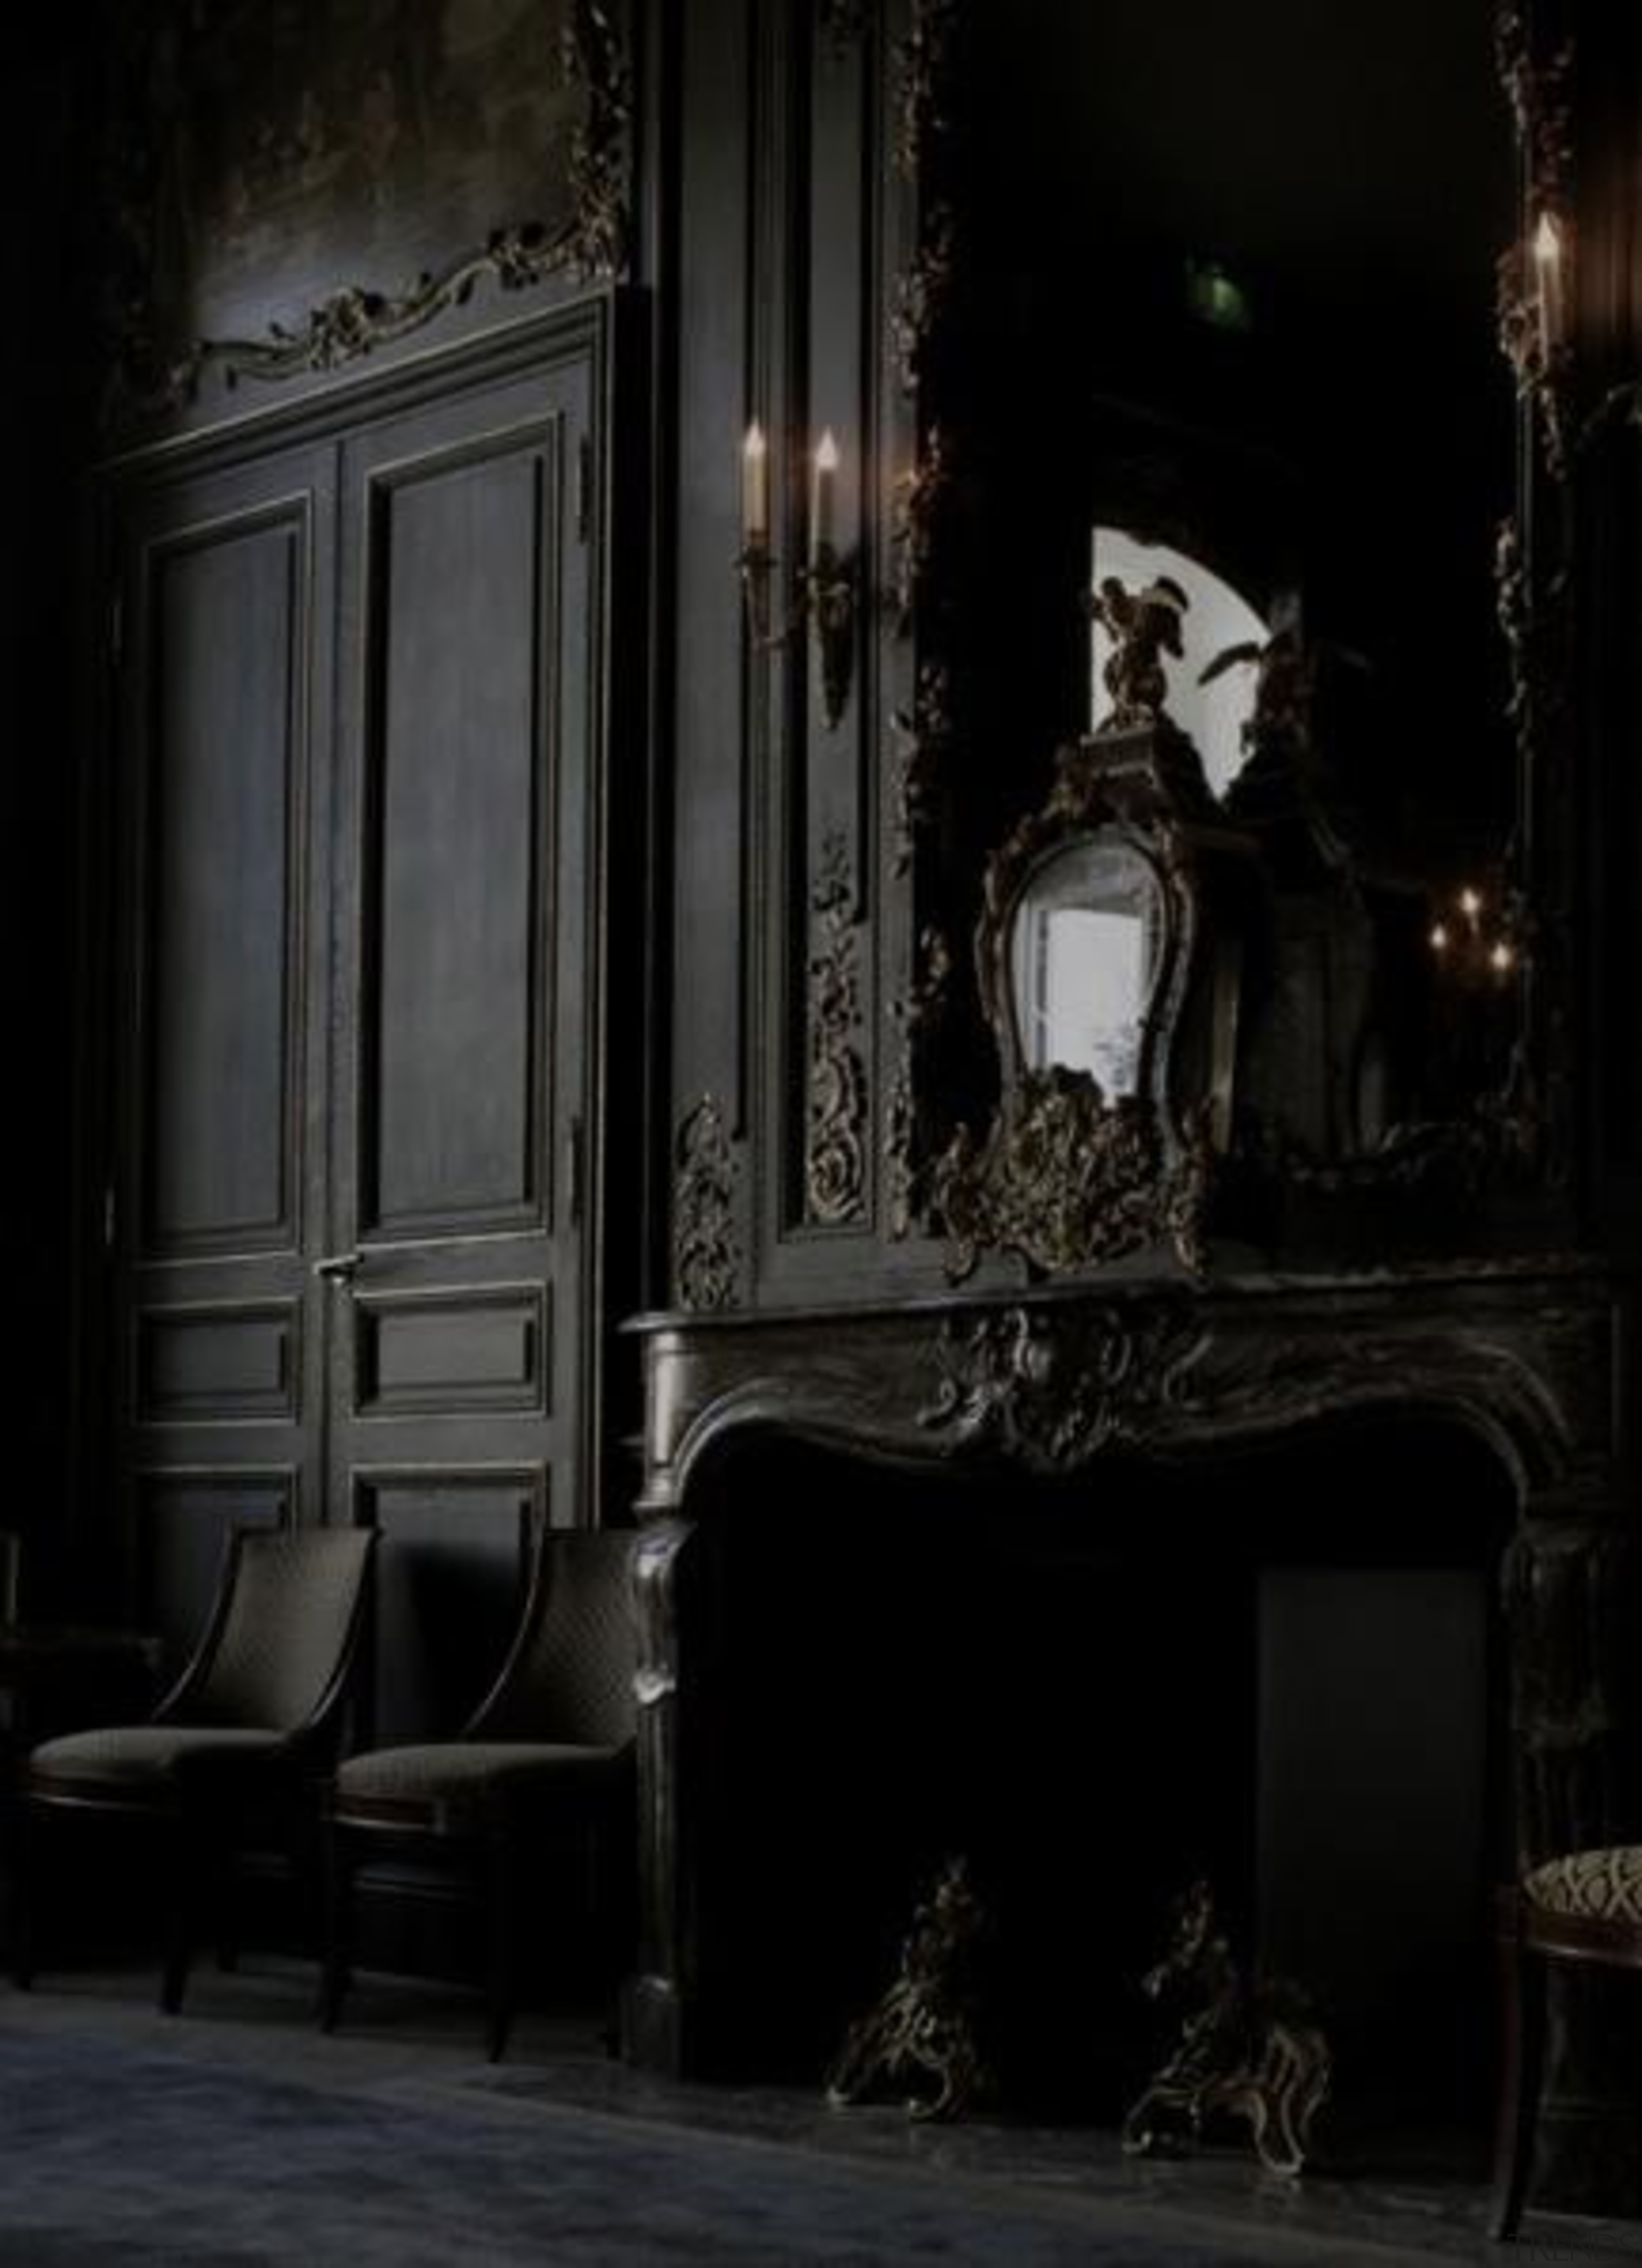 This room looks like it came straight from darkness, house, light, lighting, night, window, black